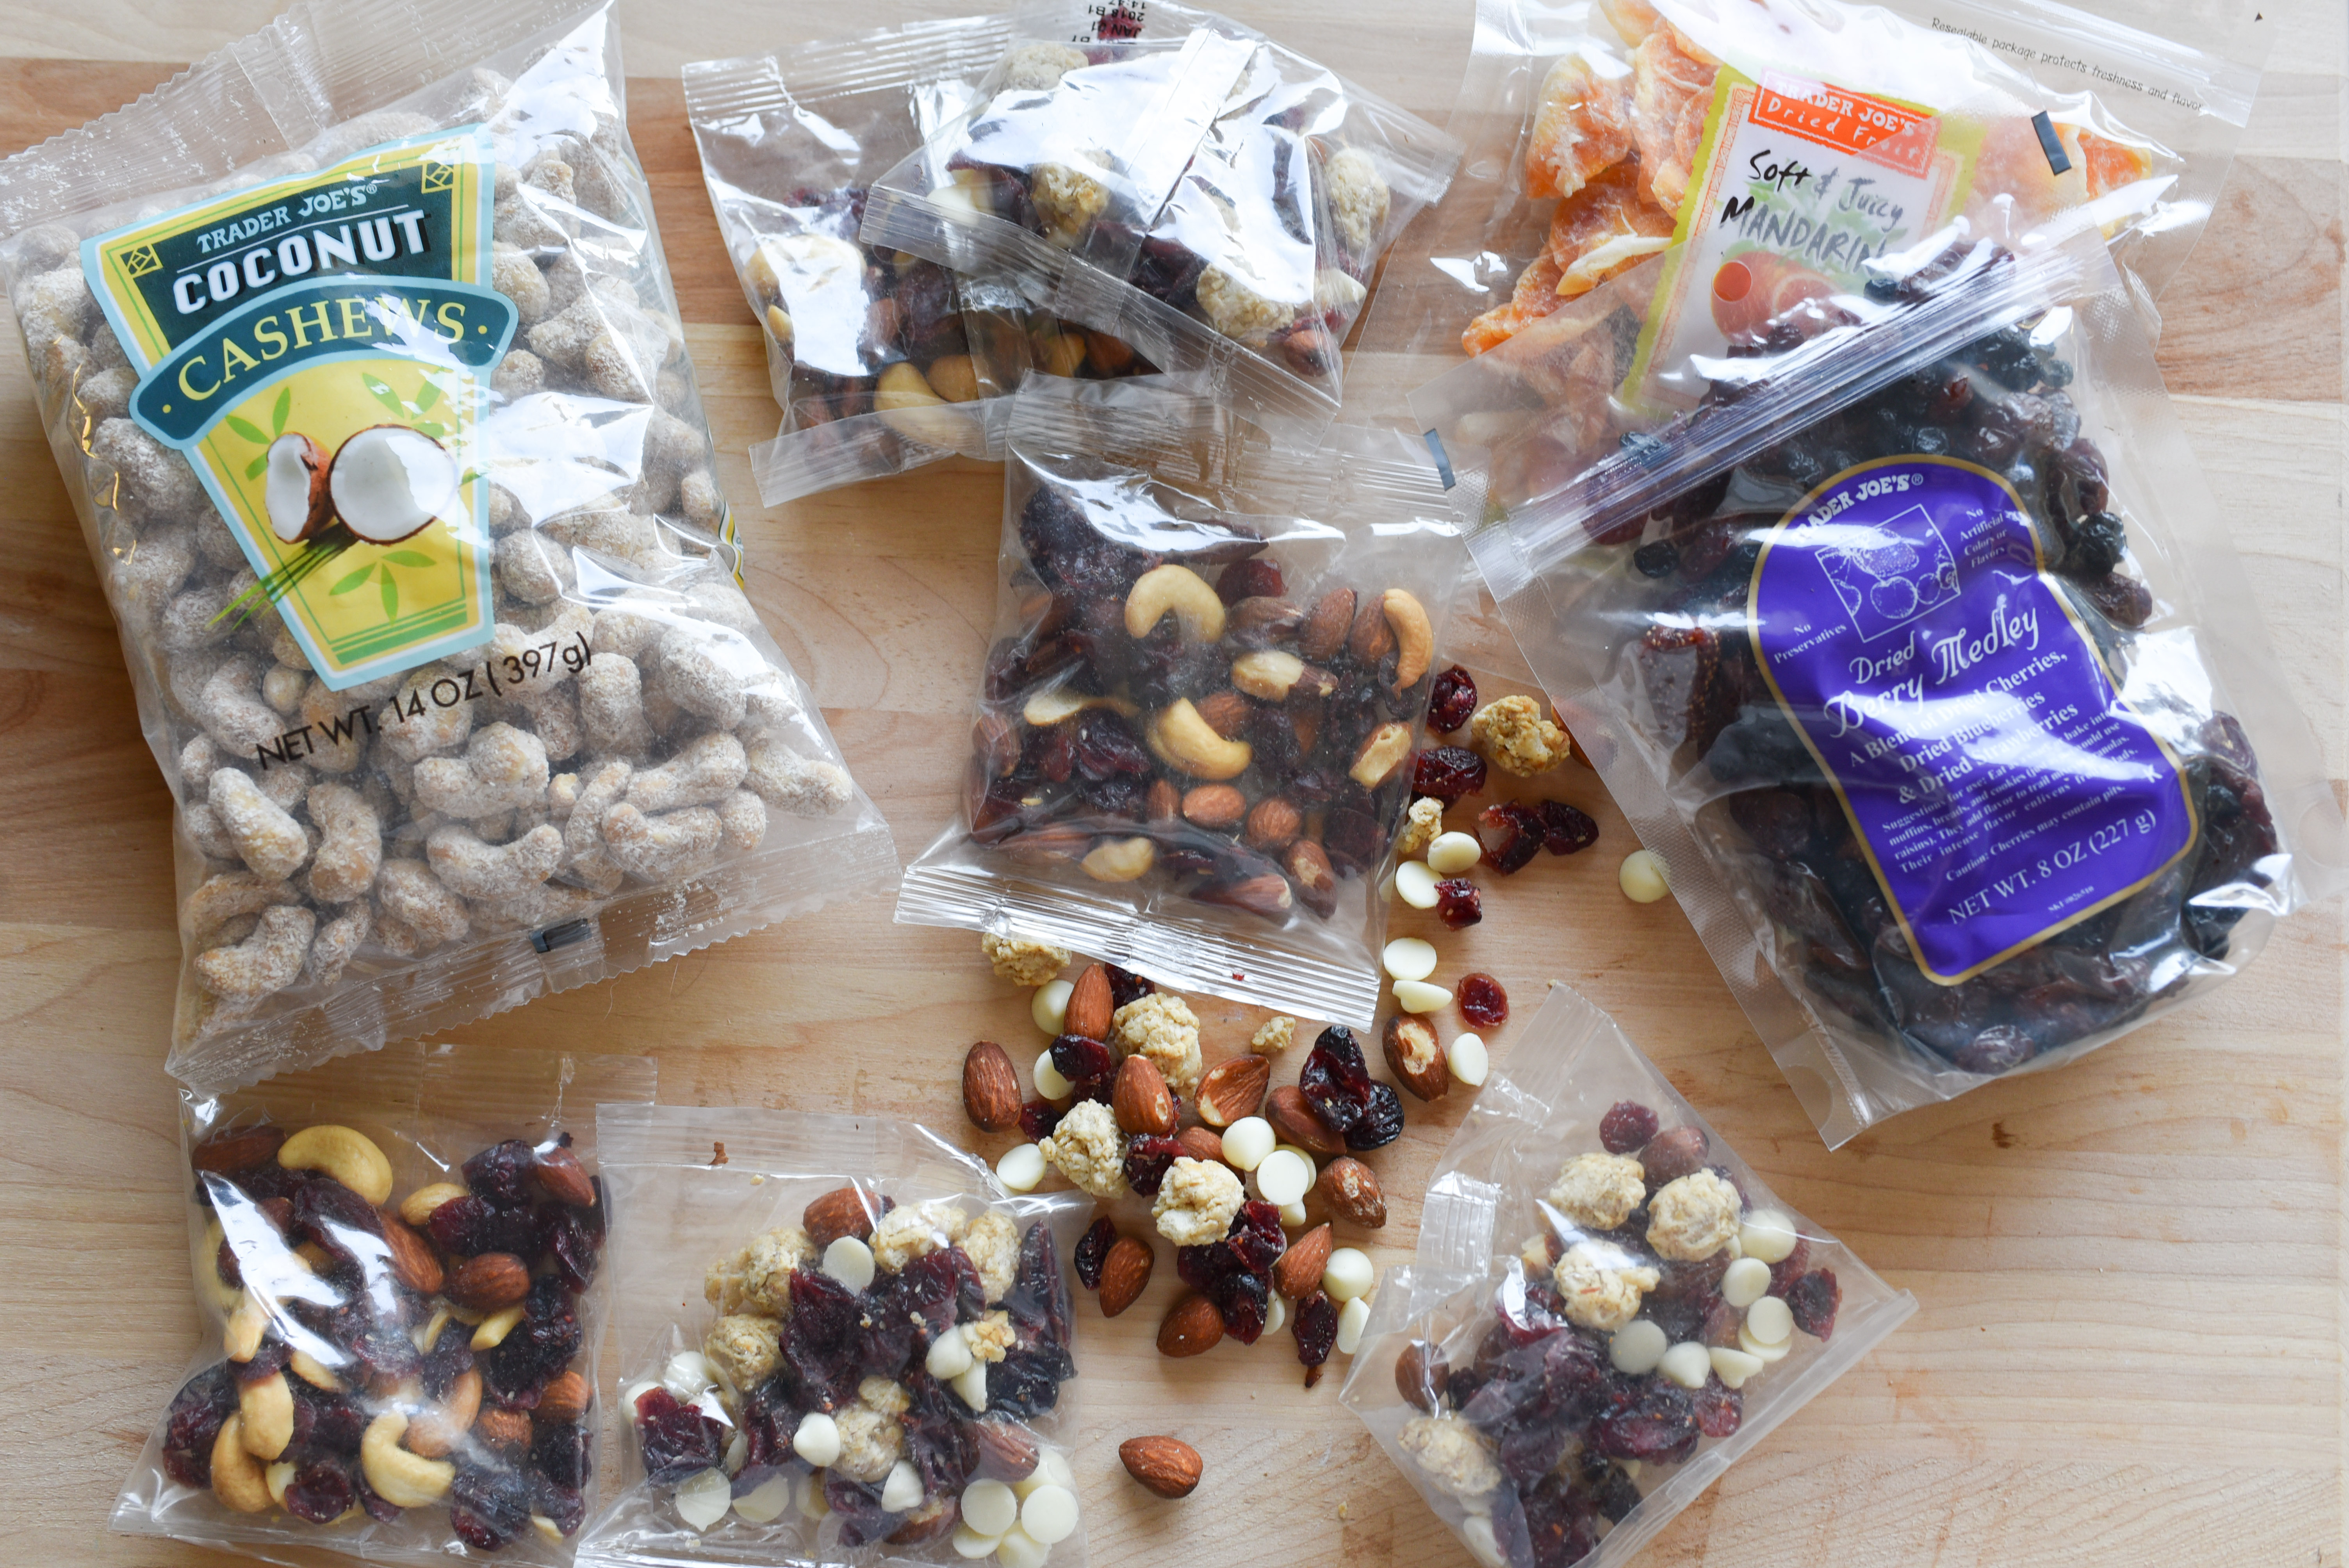 A good trail mix filled with mainly nuts and dried fruits can help keep hunger at bay and energy levels high. (Image: Rebecca Mongrain/Seattle Refined)